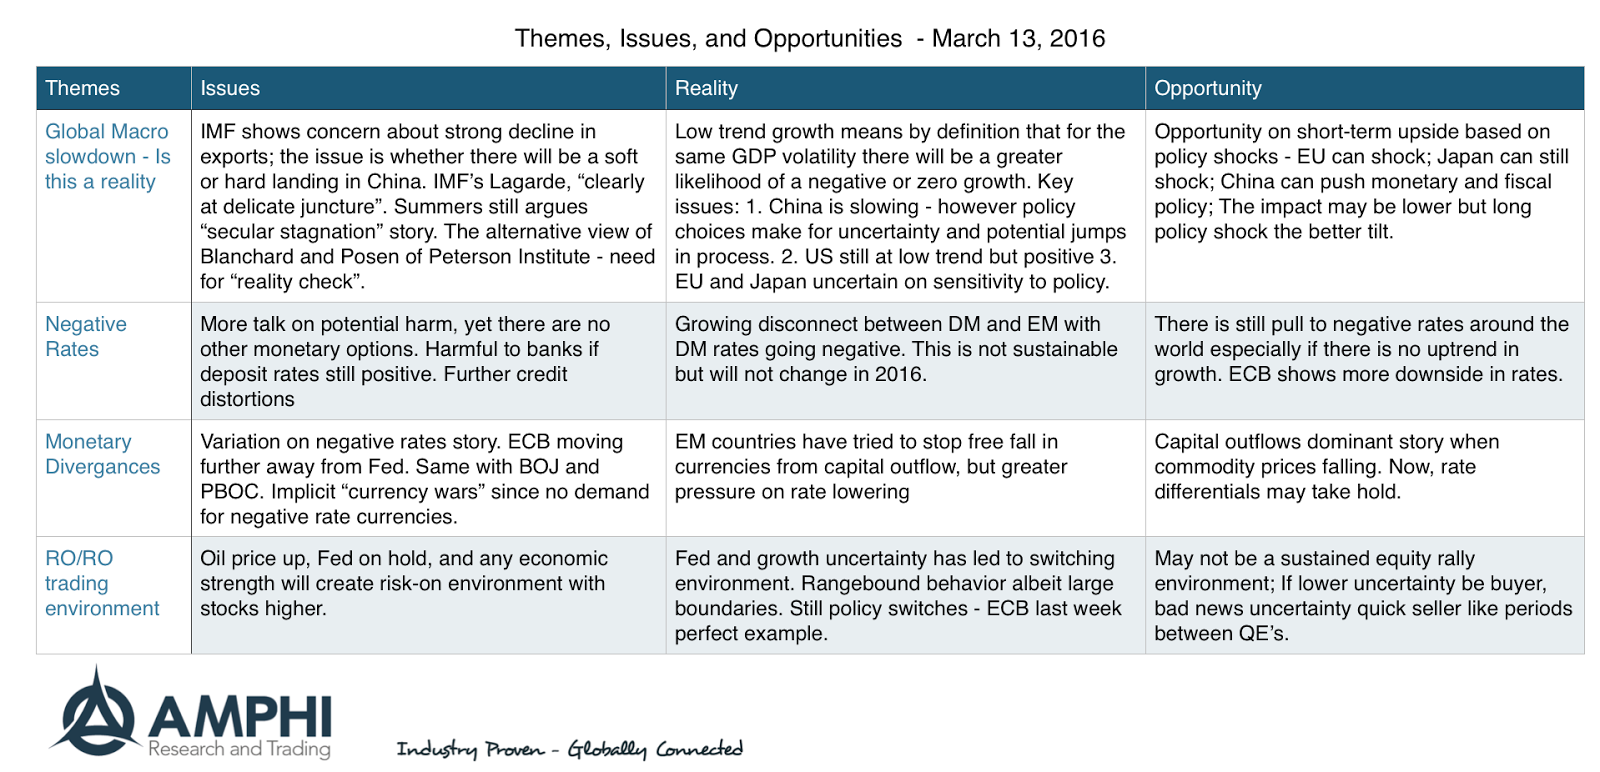 Disciplined Systematic Global Macro Views: The themes